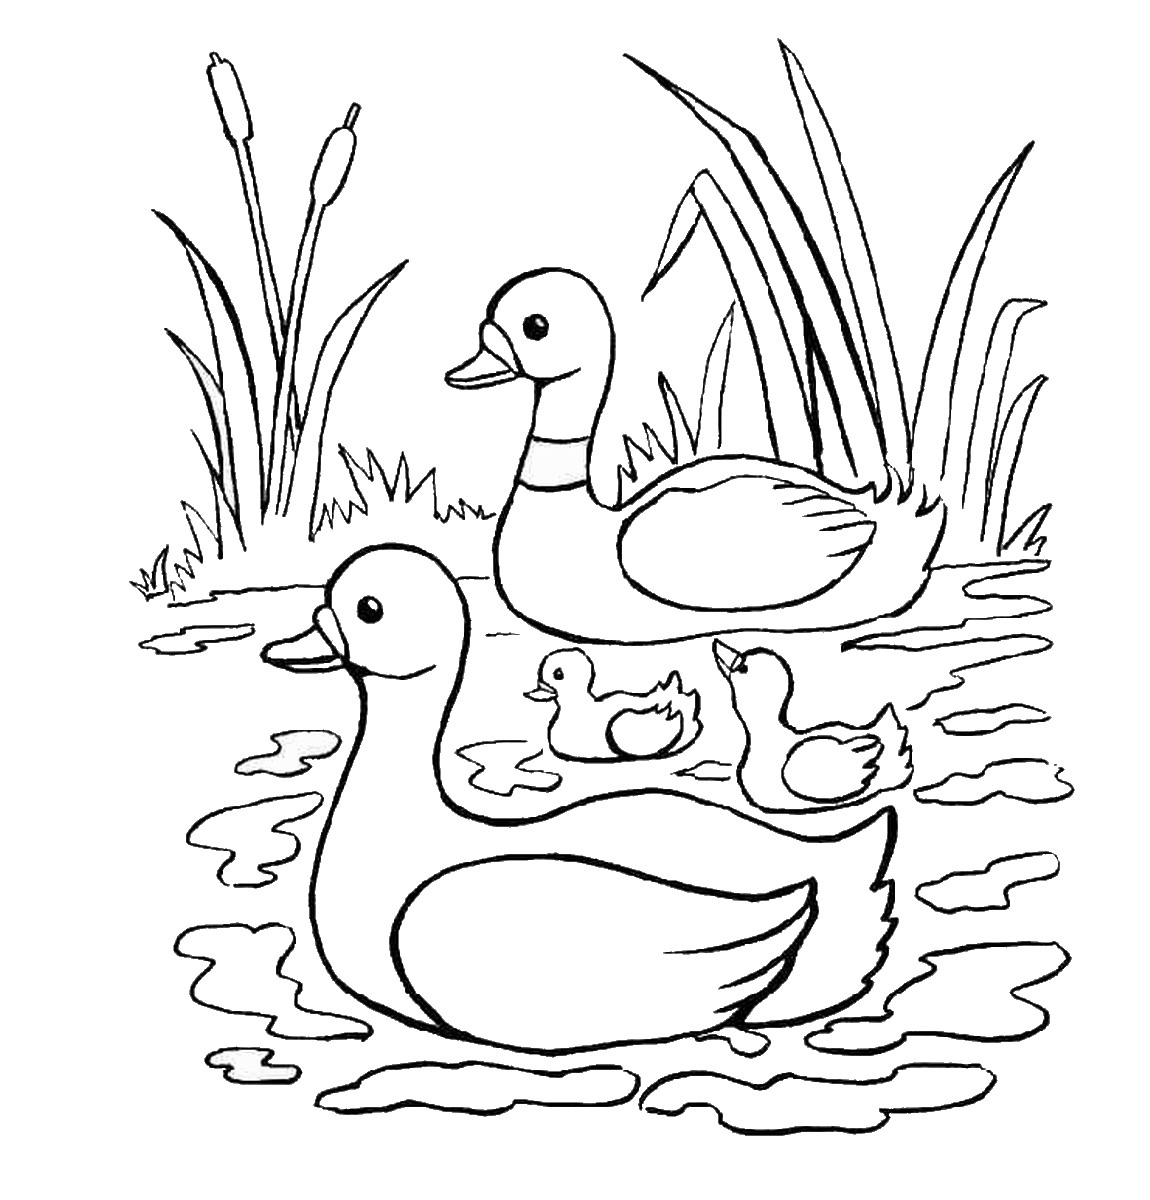 coloring pic of duck printable duck coloring pages for kids cool2bkids pic of coloring duck